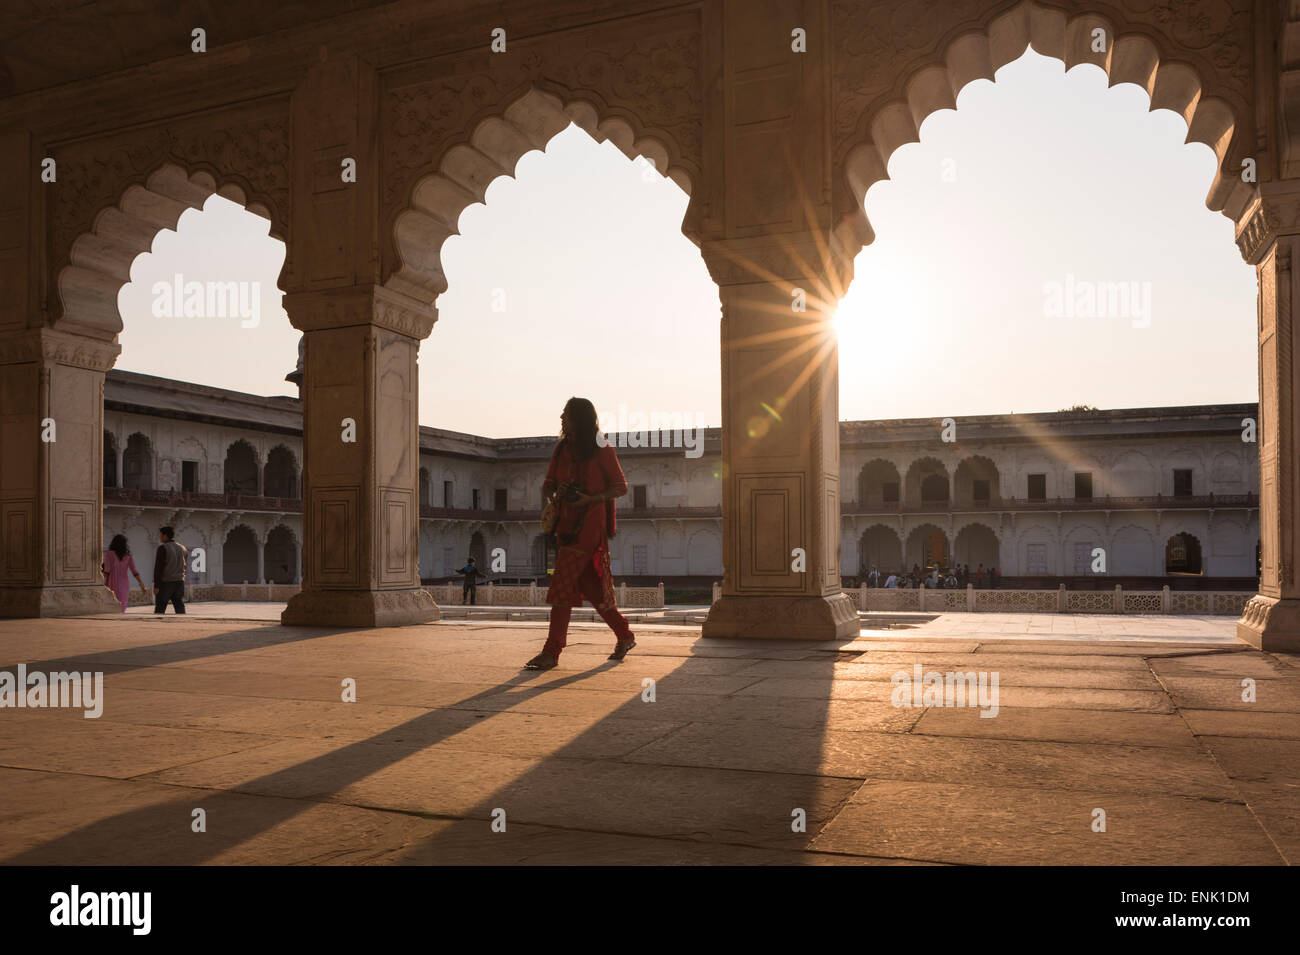 Agra Fort at sunset, UNESCO World Heritage Site, Agra, Uttar Pradesh, India, Asia - Stock Image